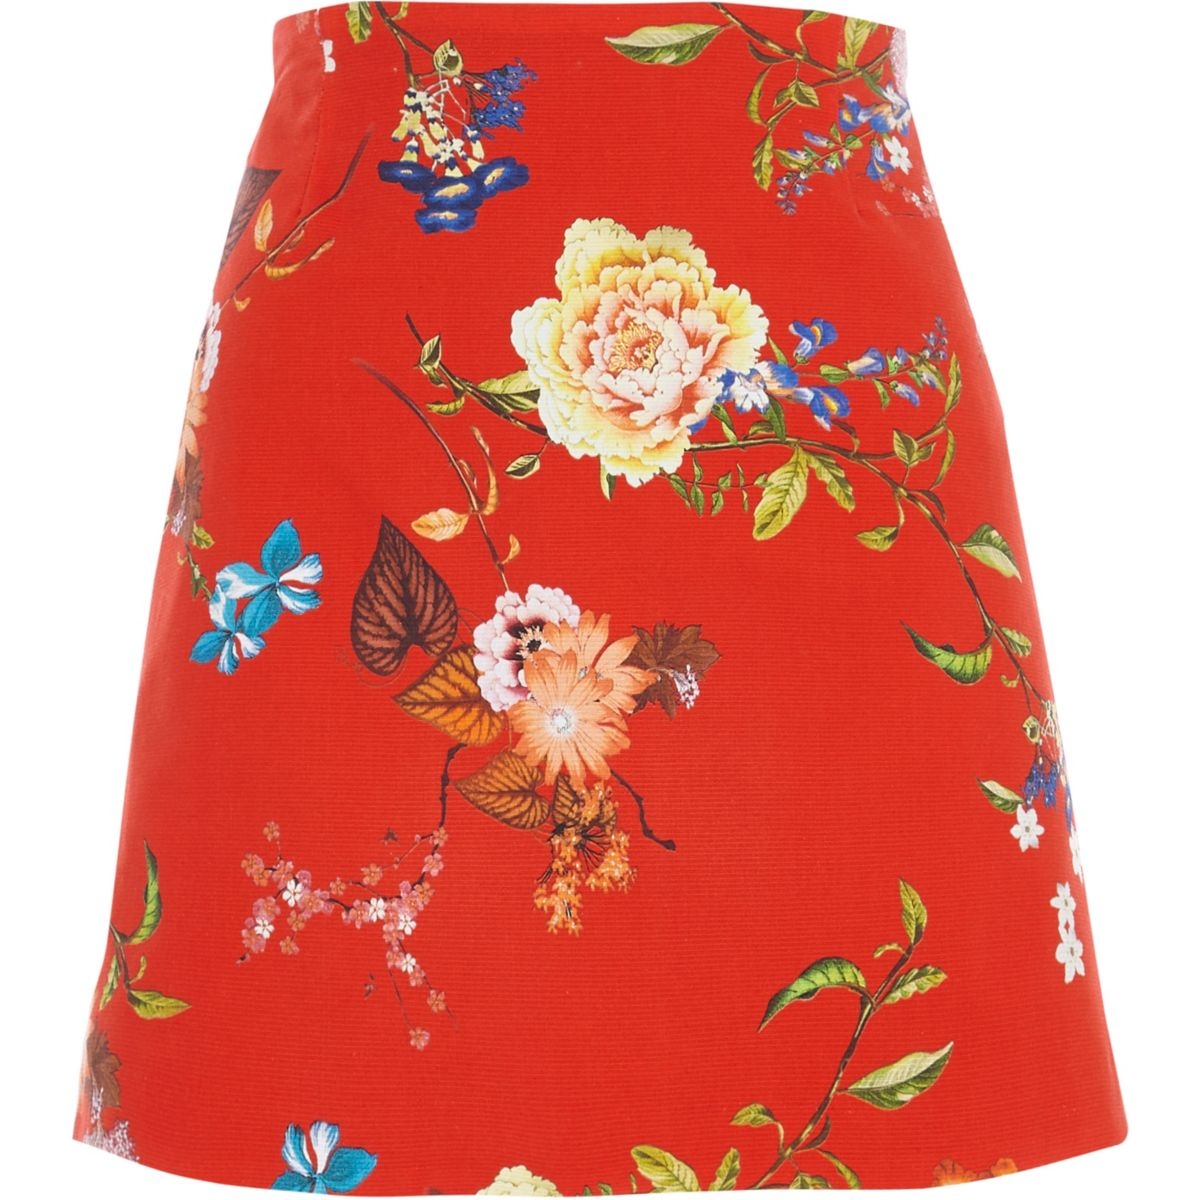 Red floral print mini skirt